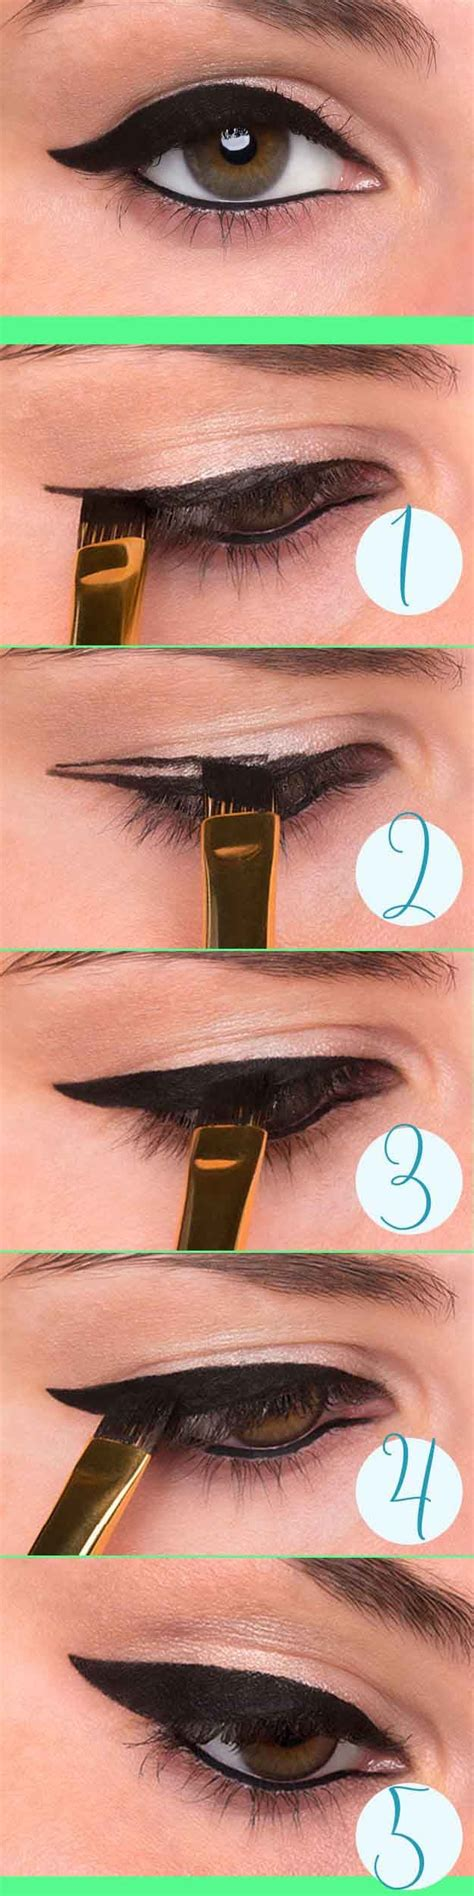 eyeliner tutorial with spoon the 25 best ideas about eyeliner spoon on pinterest how